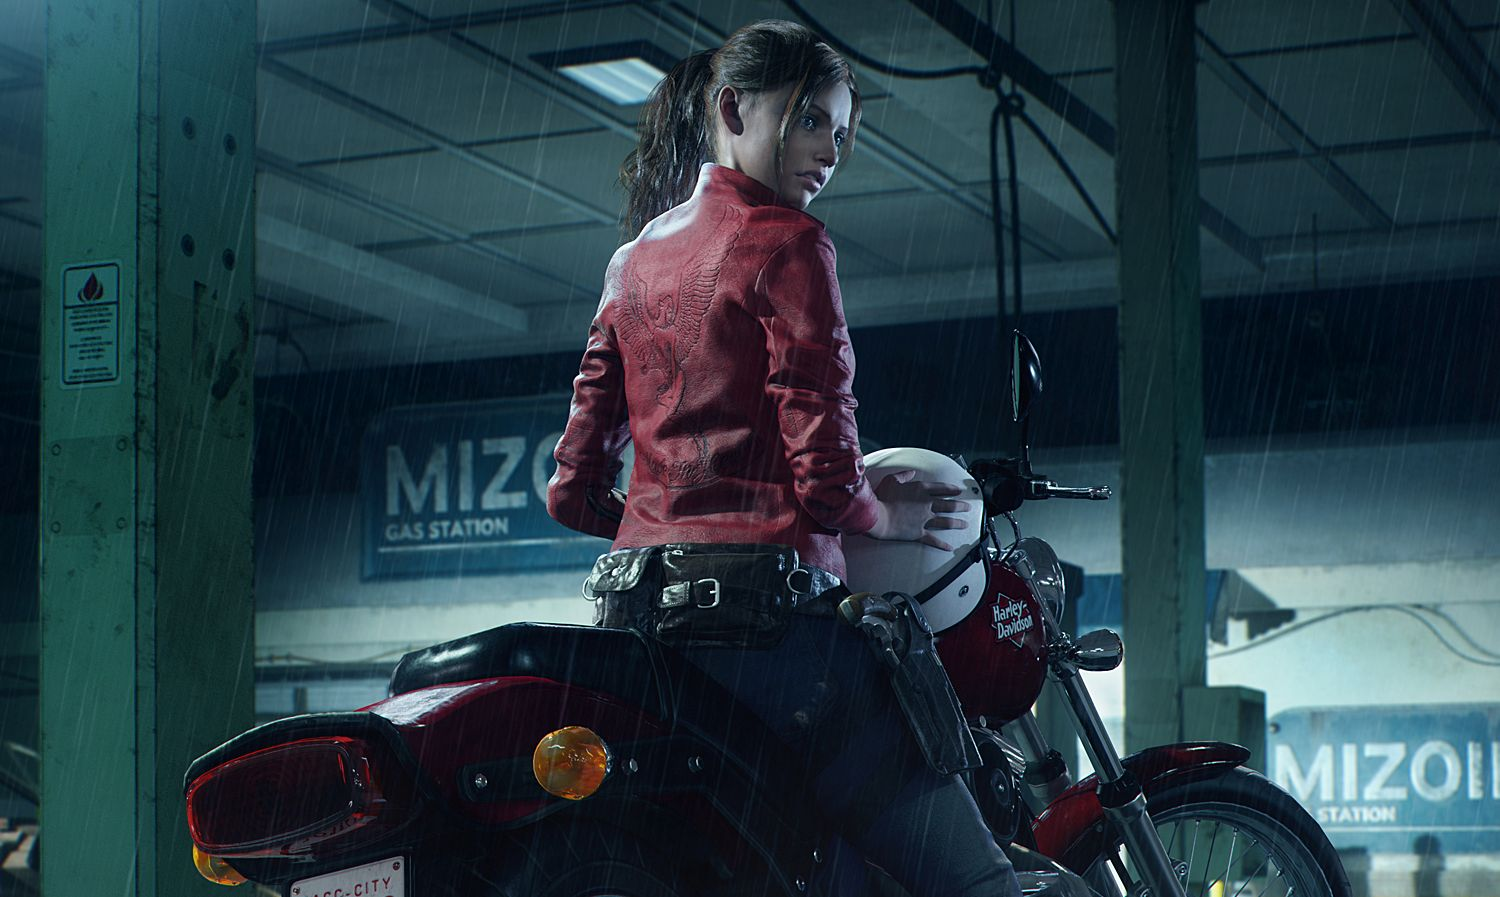 Resident Evil 2 S Claire Redfield Box Art Collector S Edition And More Revealed By Capcom